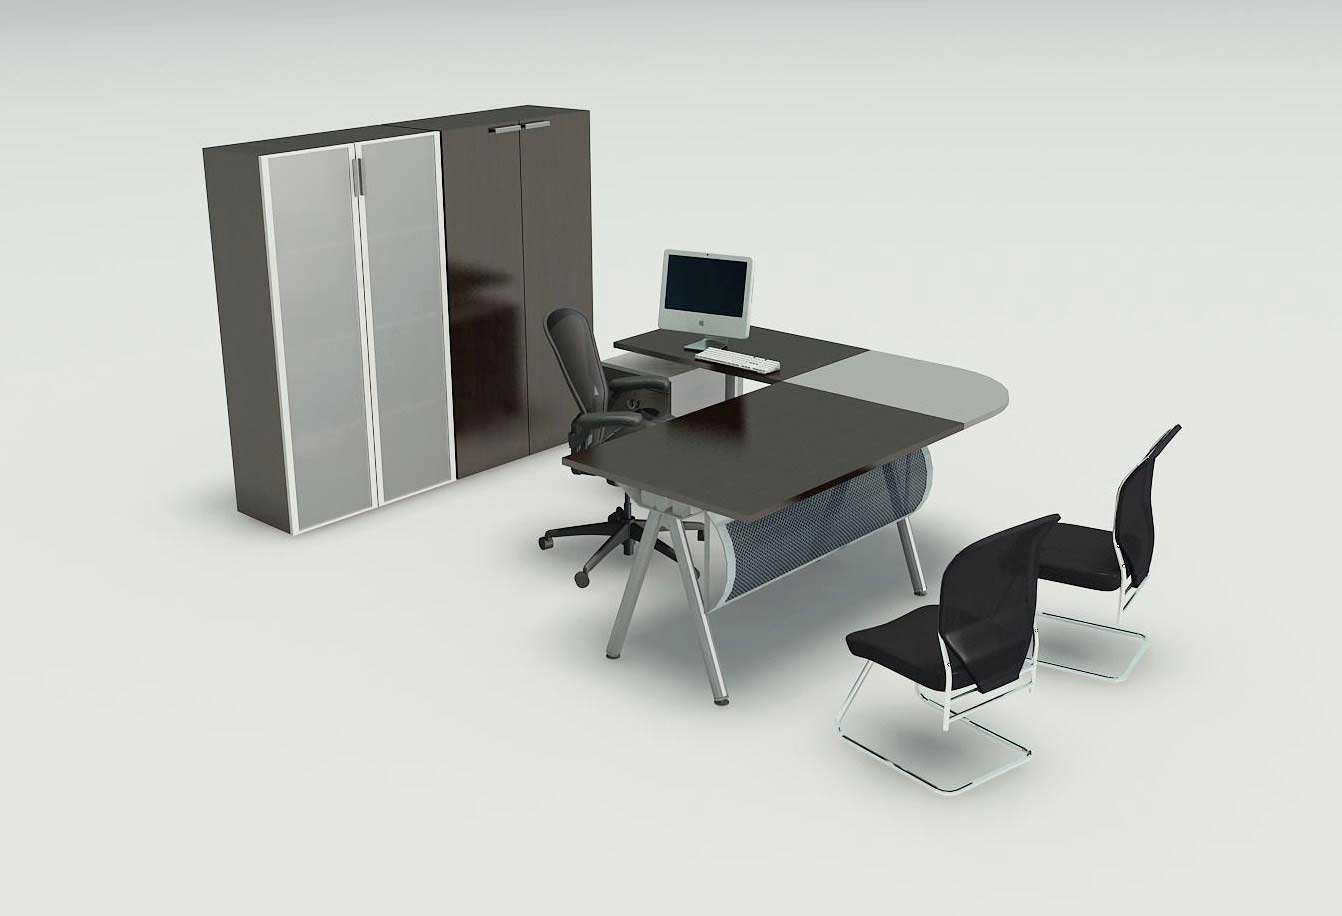 Ergonomic and Classy Furniture Ideas for Office